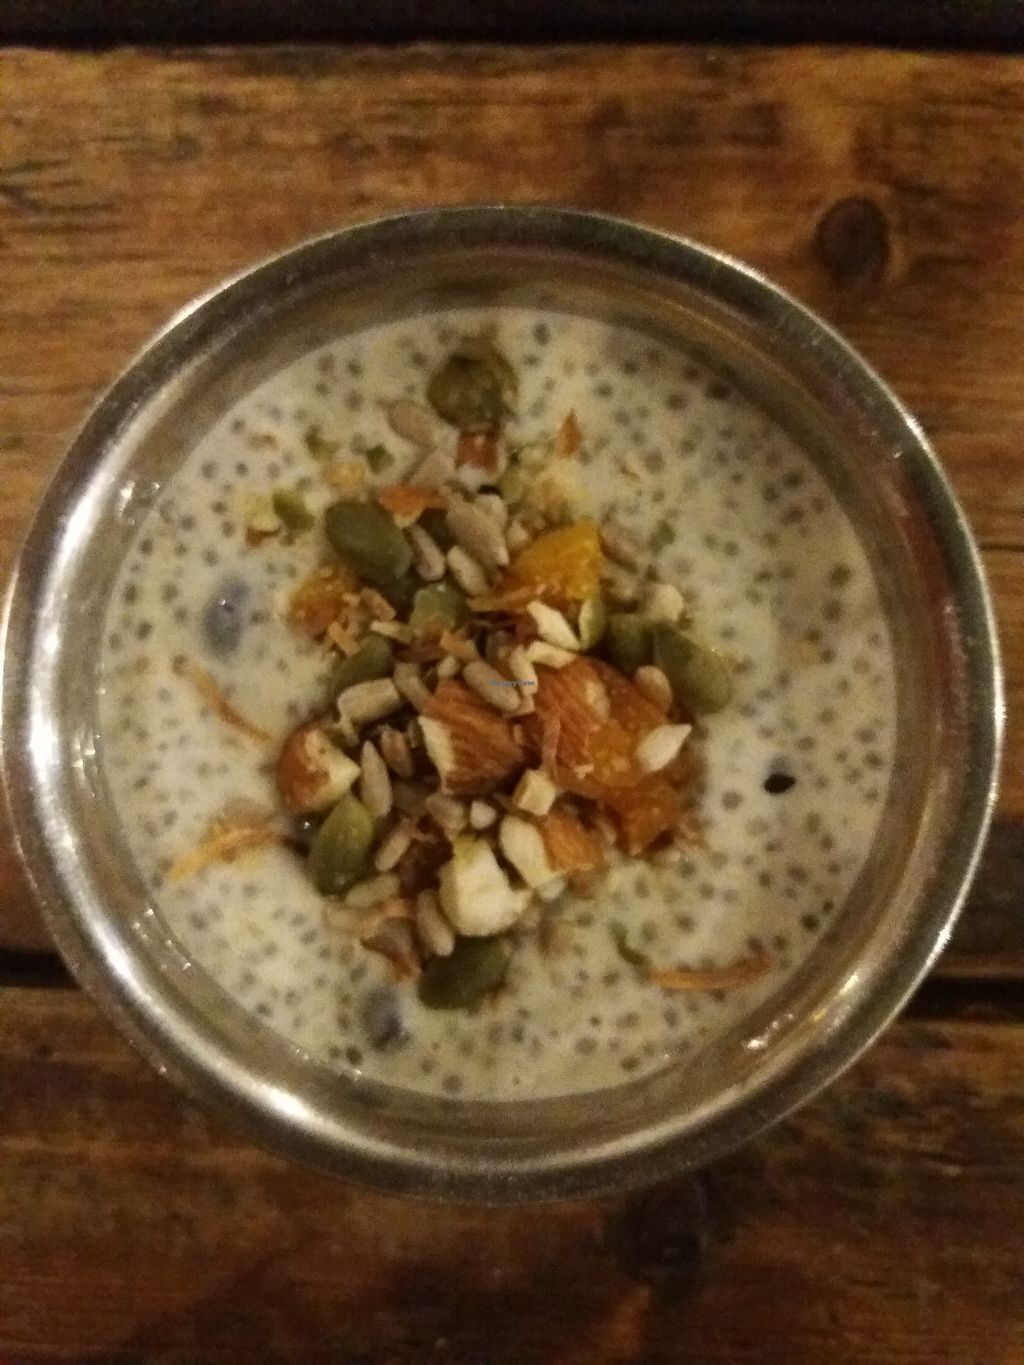 """Photo of Lentil As Anything - Thornbury  by <a href=""""/members/profile/veganvirtues"""">veganvirtues</a> <br/>Tapioca pudding <br/> October 15, 2017  - <a href='/contact/abuse/image/65328/315670'>Report</a>"""